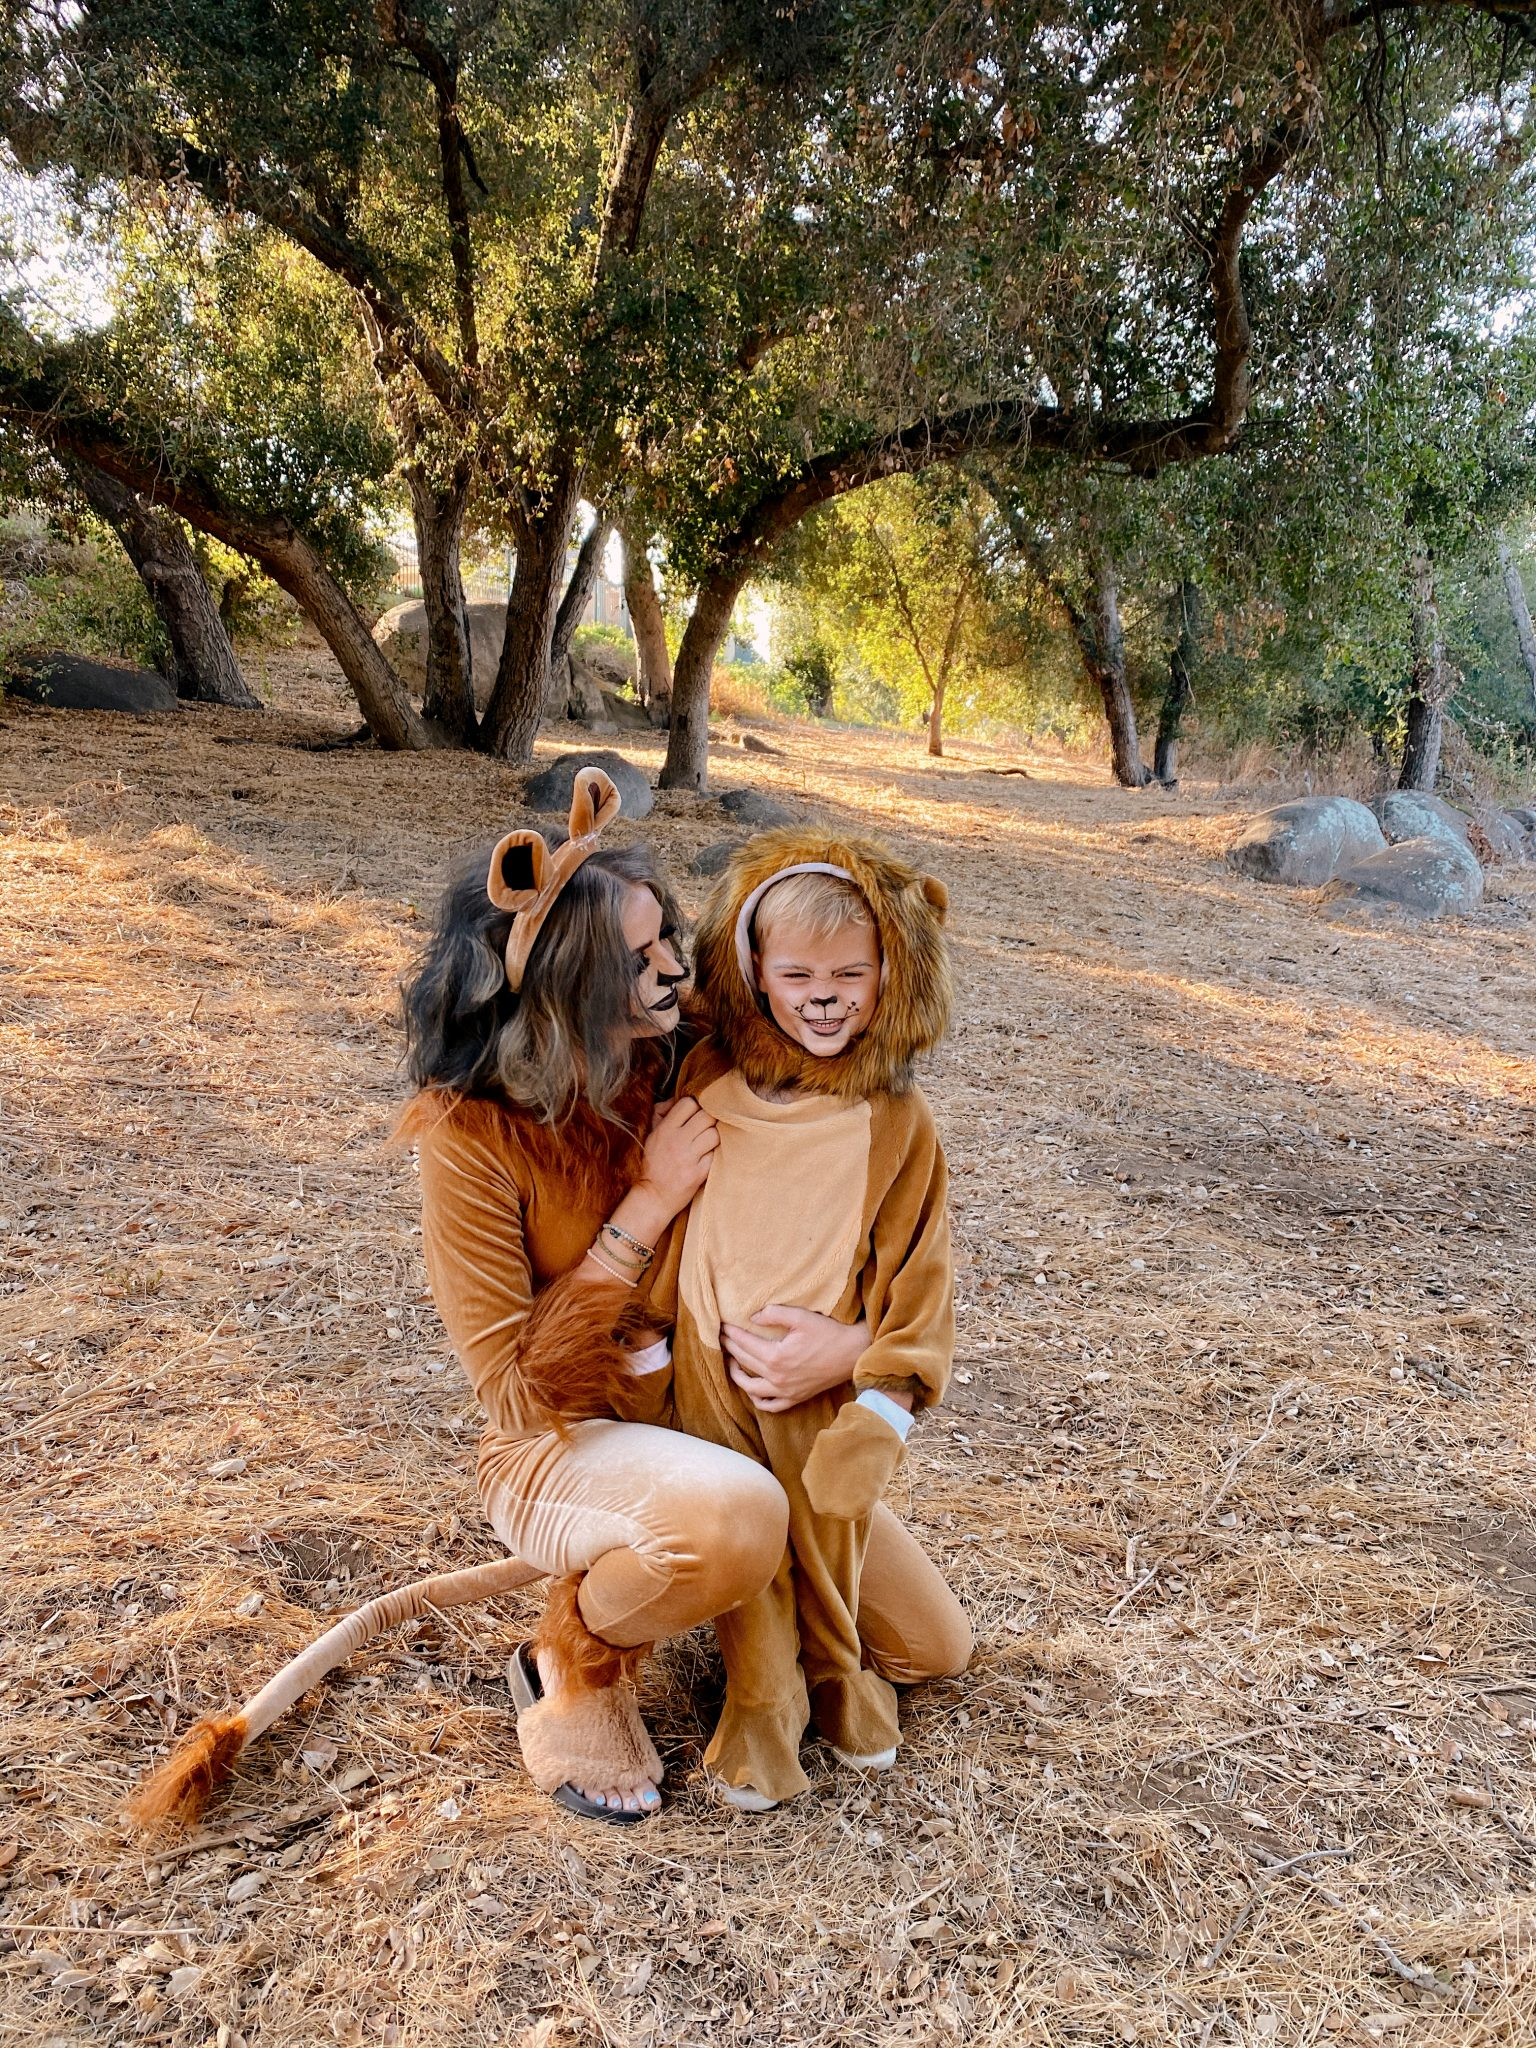 Family Halloween Costumes by popular San Diego lifestyle blog, Navy Grace: image of a mom and her son dressed up as lions.